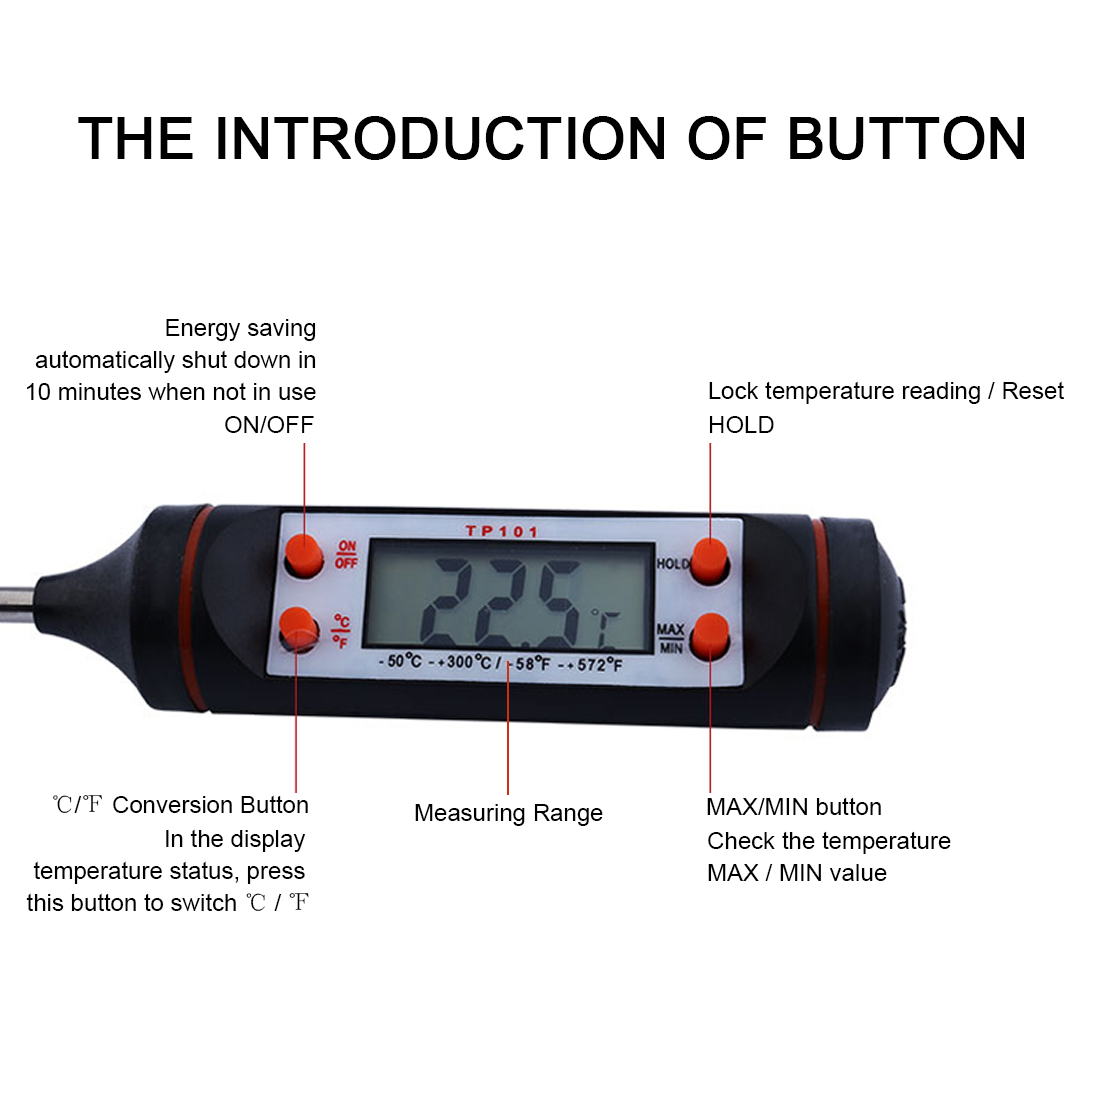 HOT Cooking Thermometers Outdoor kamp malzemeleri LCD Screen Digital BBQ Cooking Thermometer Pen For Food Meat Milk Wholesale